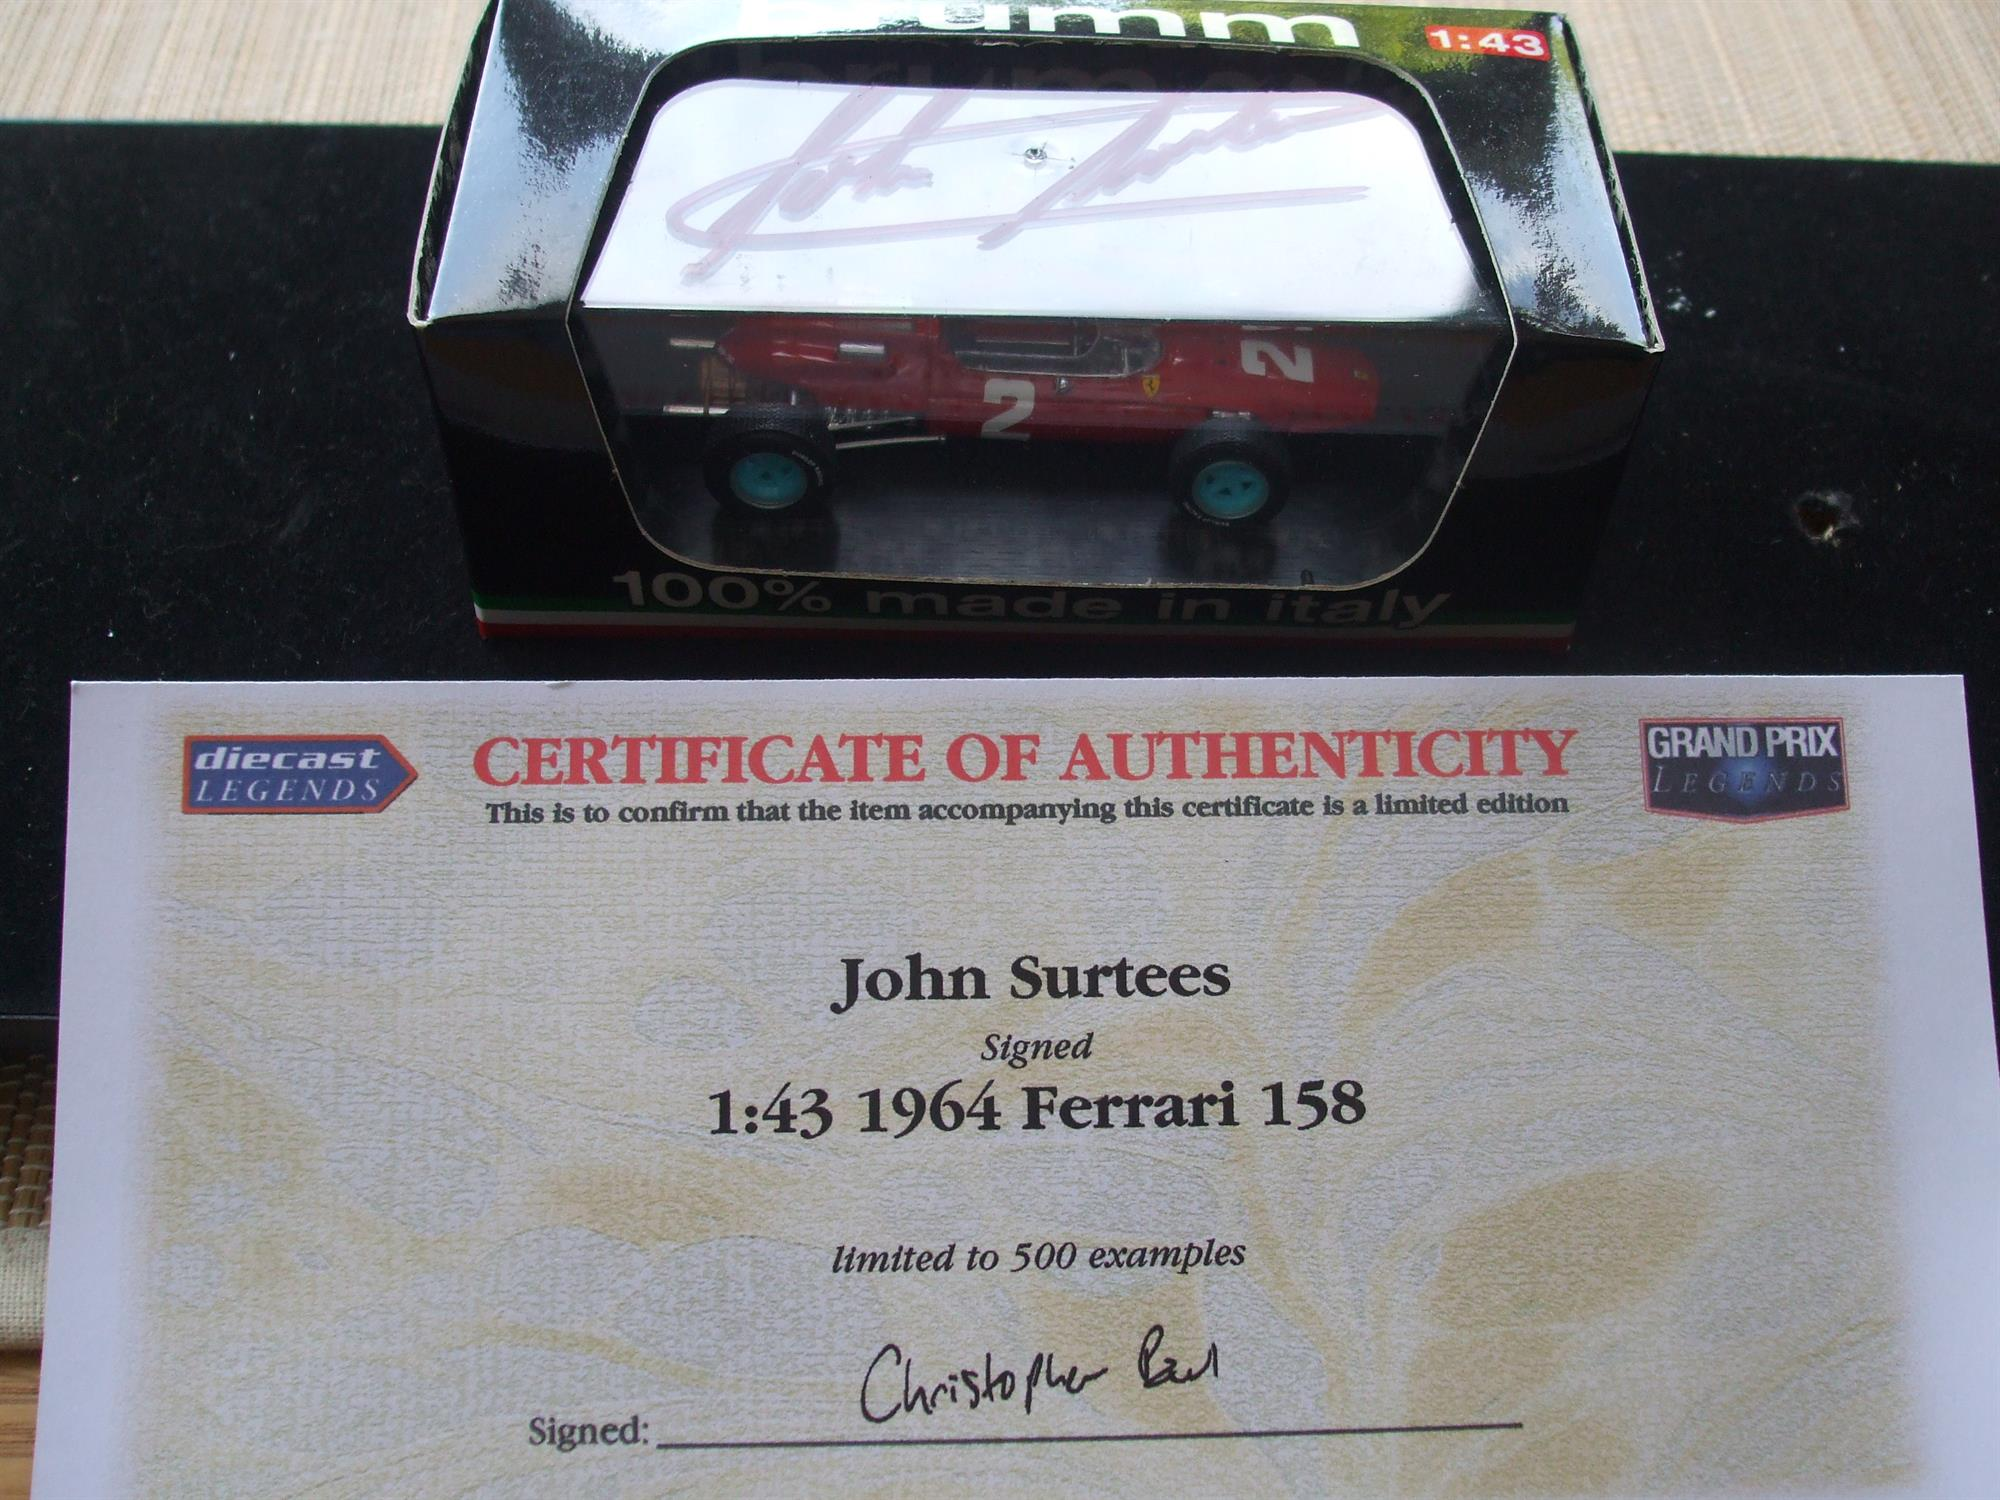 Superb John Surtees Tribute Collection of Models and Memorabilia - Image 5 of 8